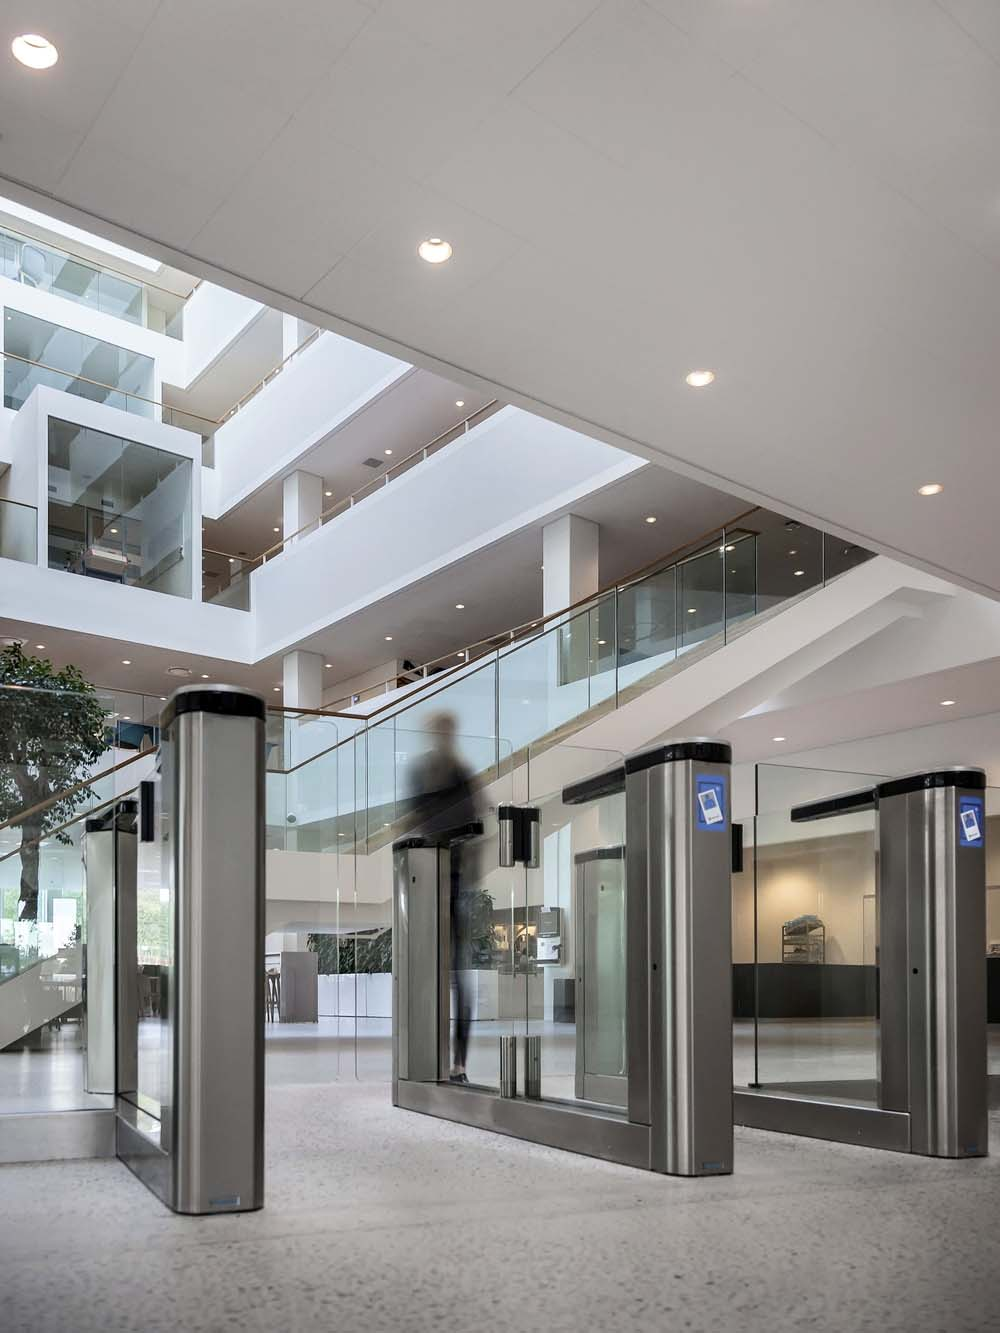 Nine tips for office entrance control from Gunnebo